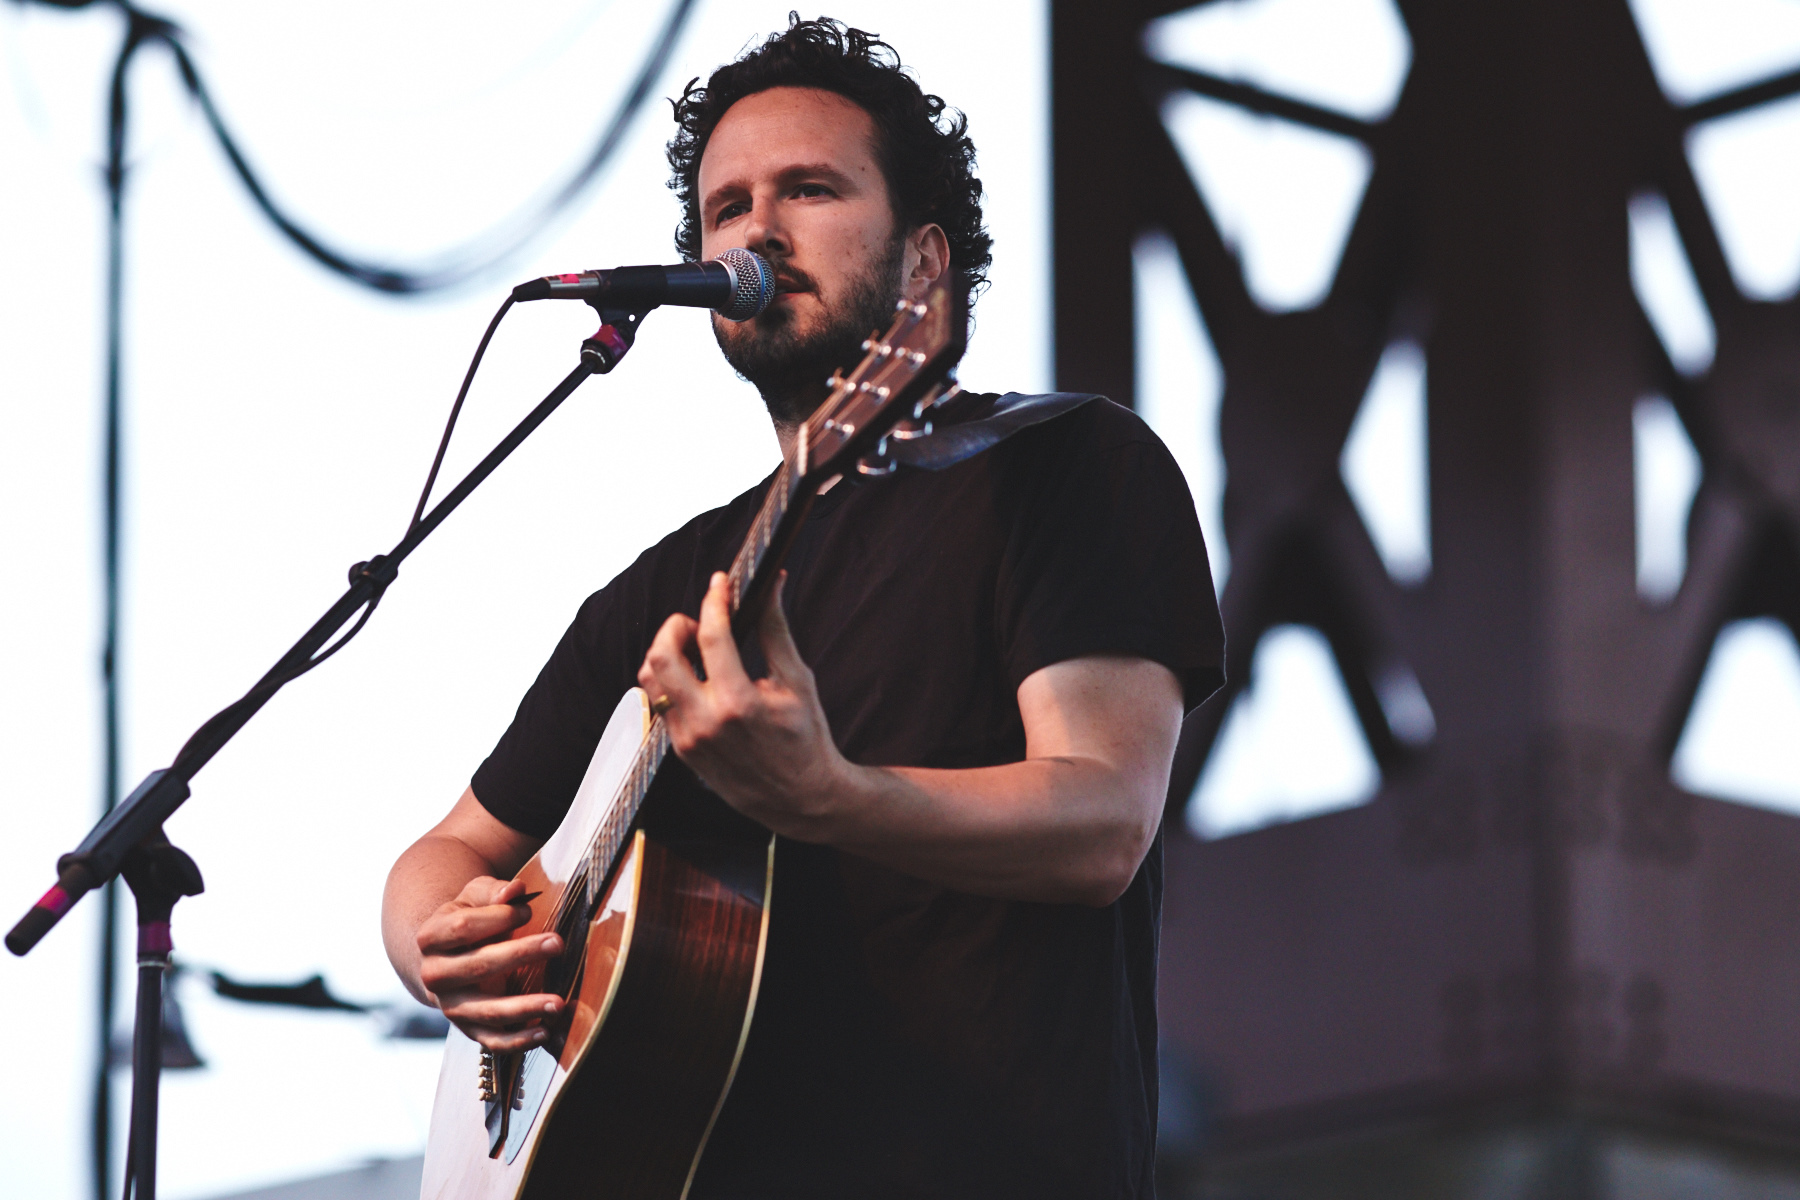 Mason_Jennings_At_Twin_Ports_Music_Festival_Duluth_By_Photographer_Joe_Lemke_045.JPG